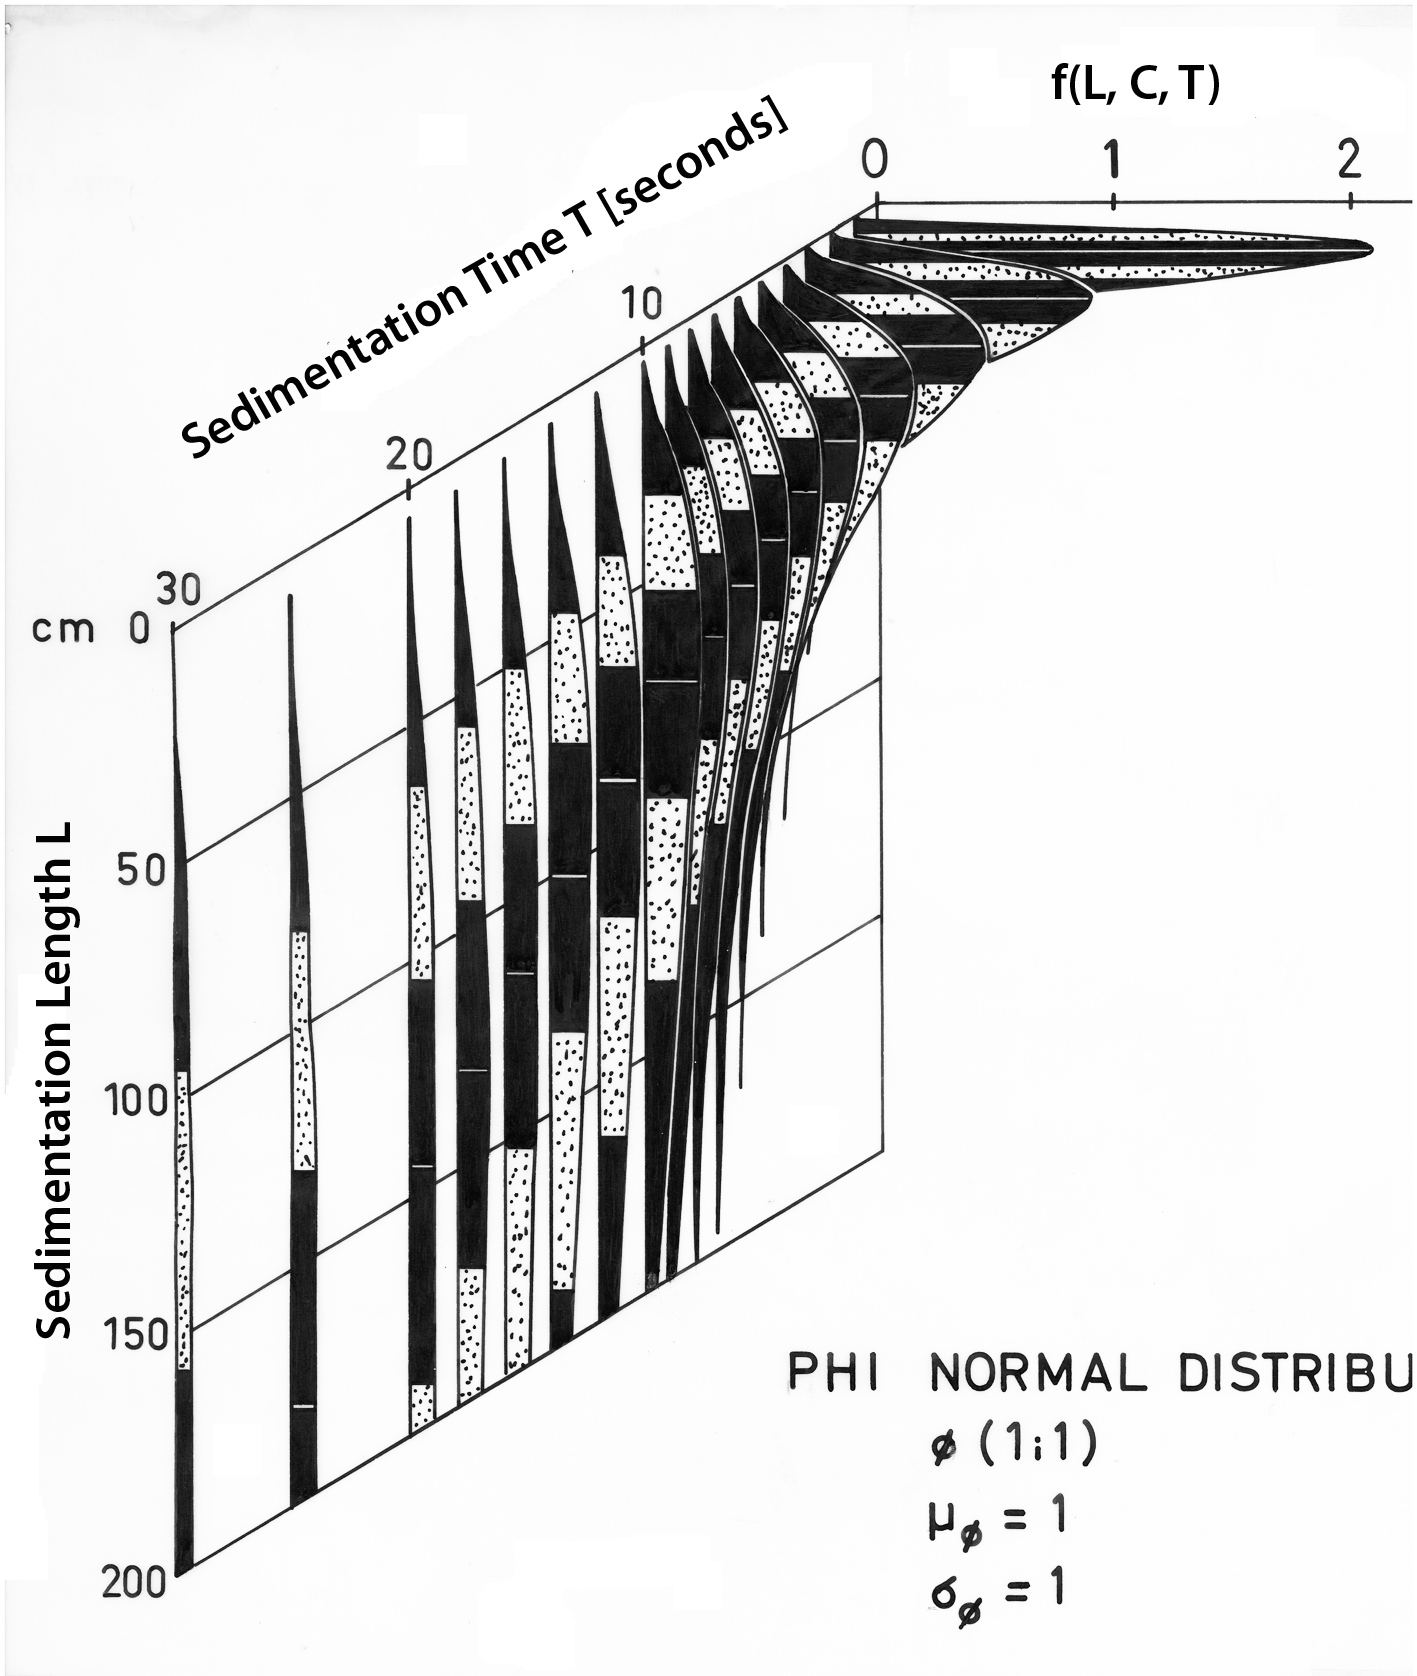 Stratified Sedimentation of a sample with PHI Gaussian distribution